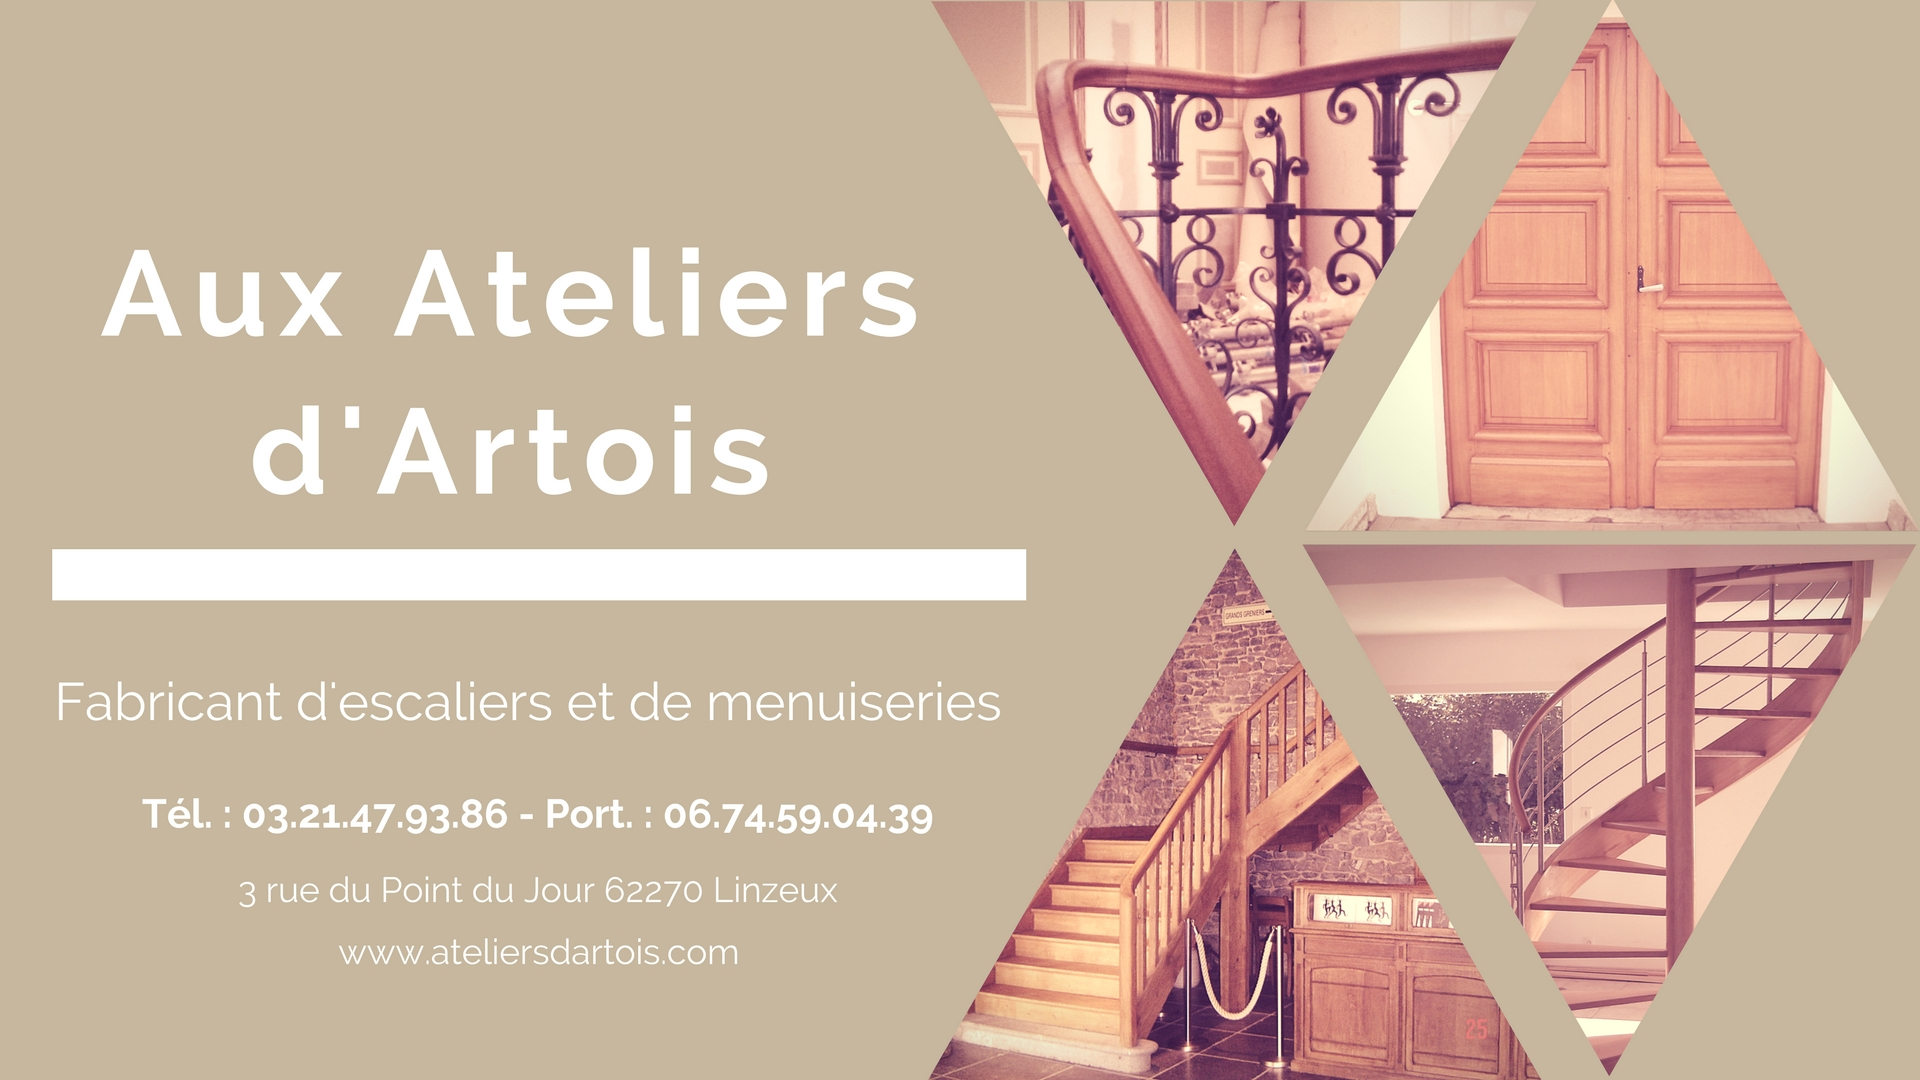 vignette video youtube aux ateliers artois